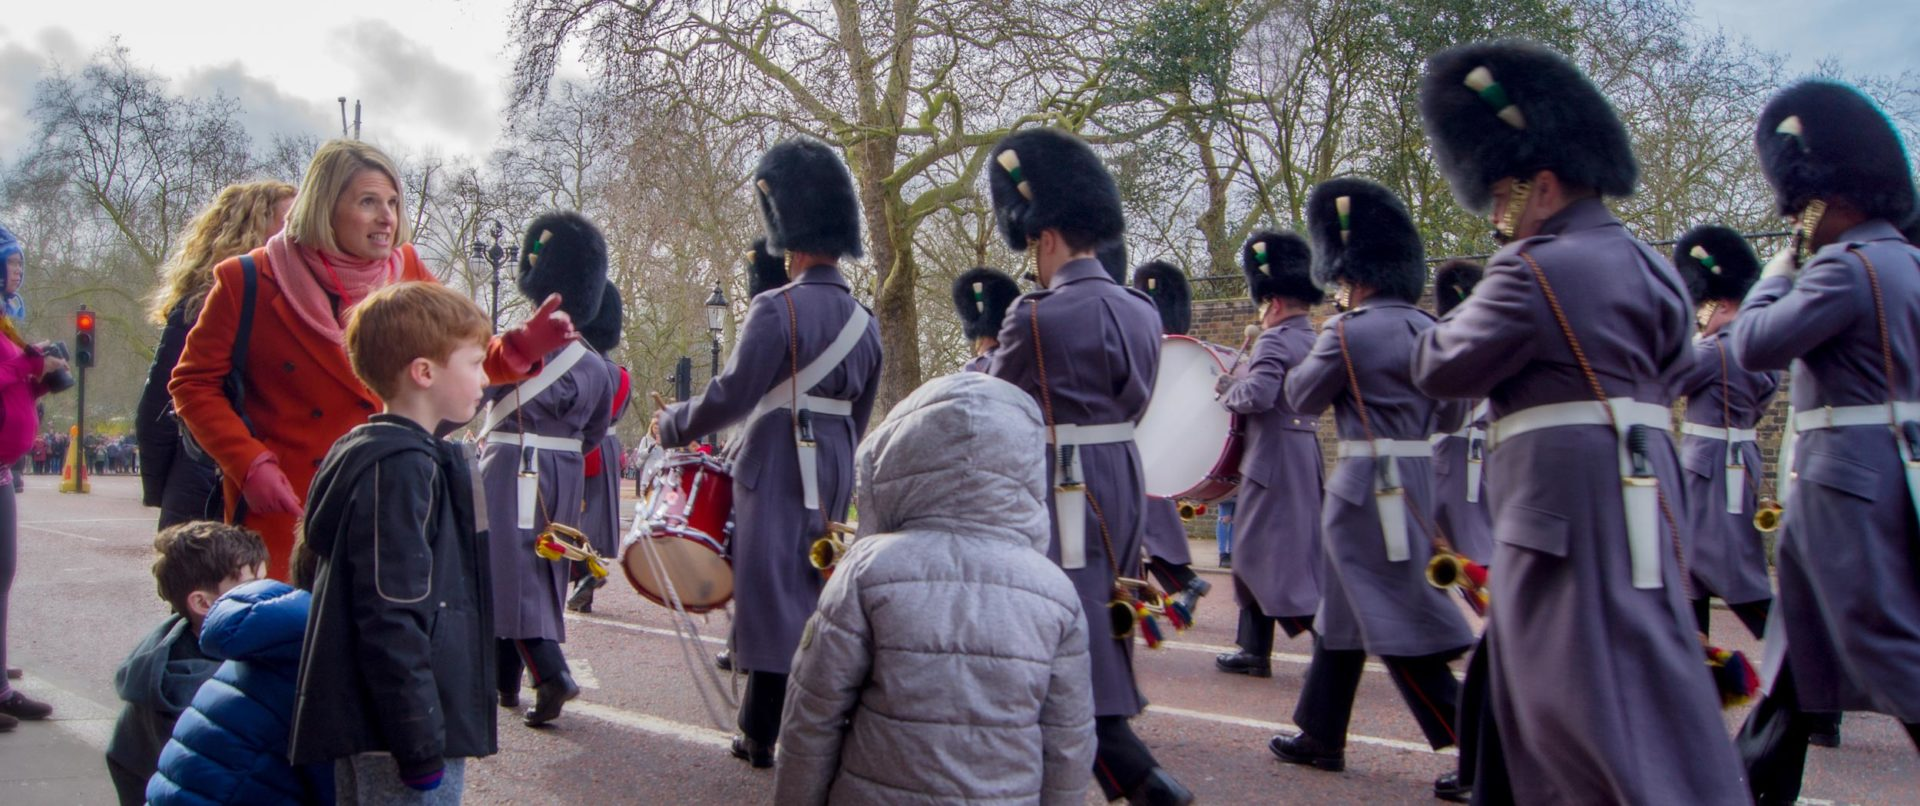 westminster-abbey-changing-of-the-guards-treasure-hunt-